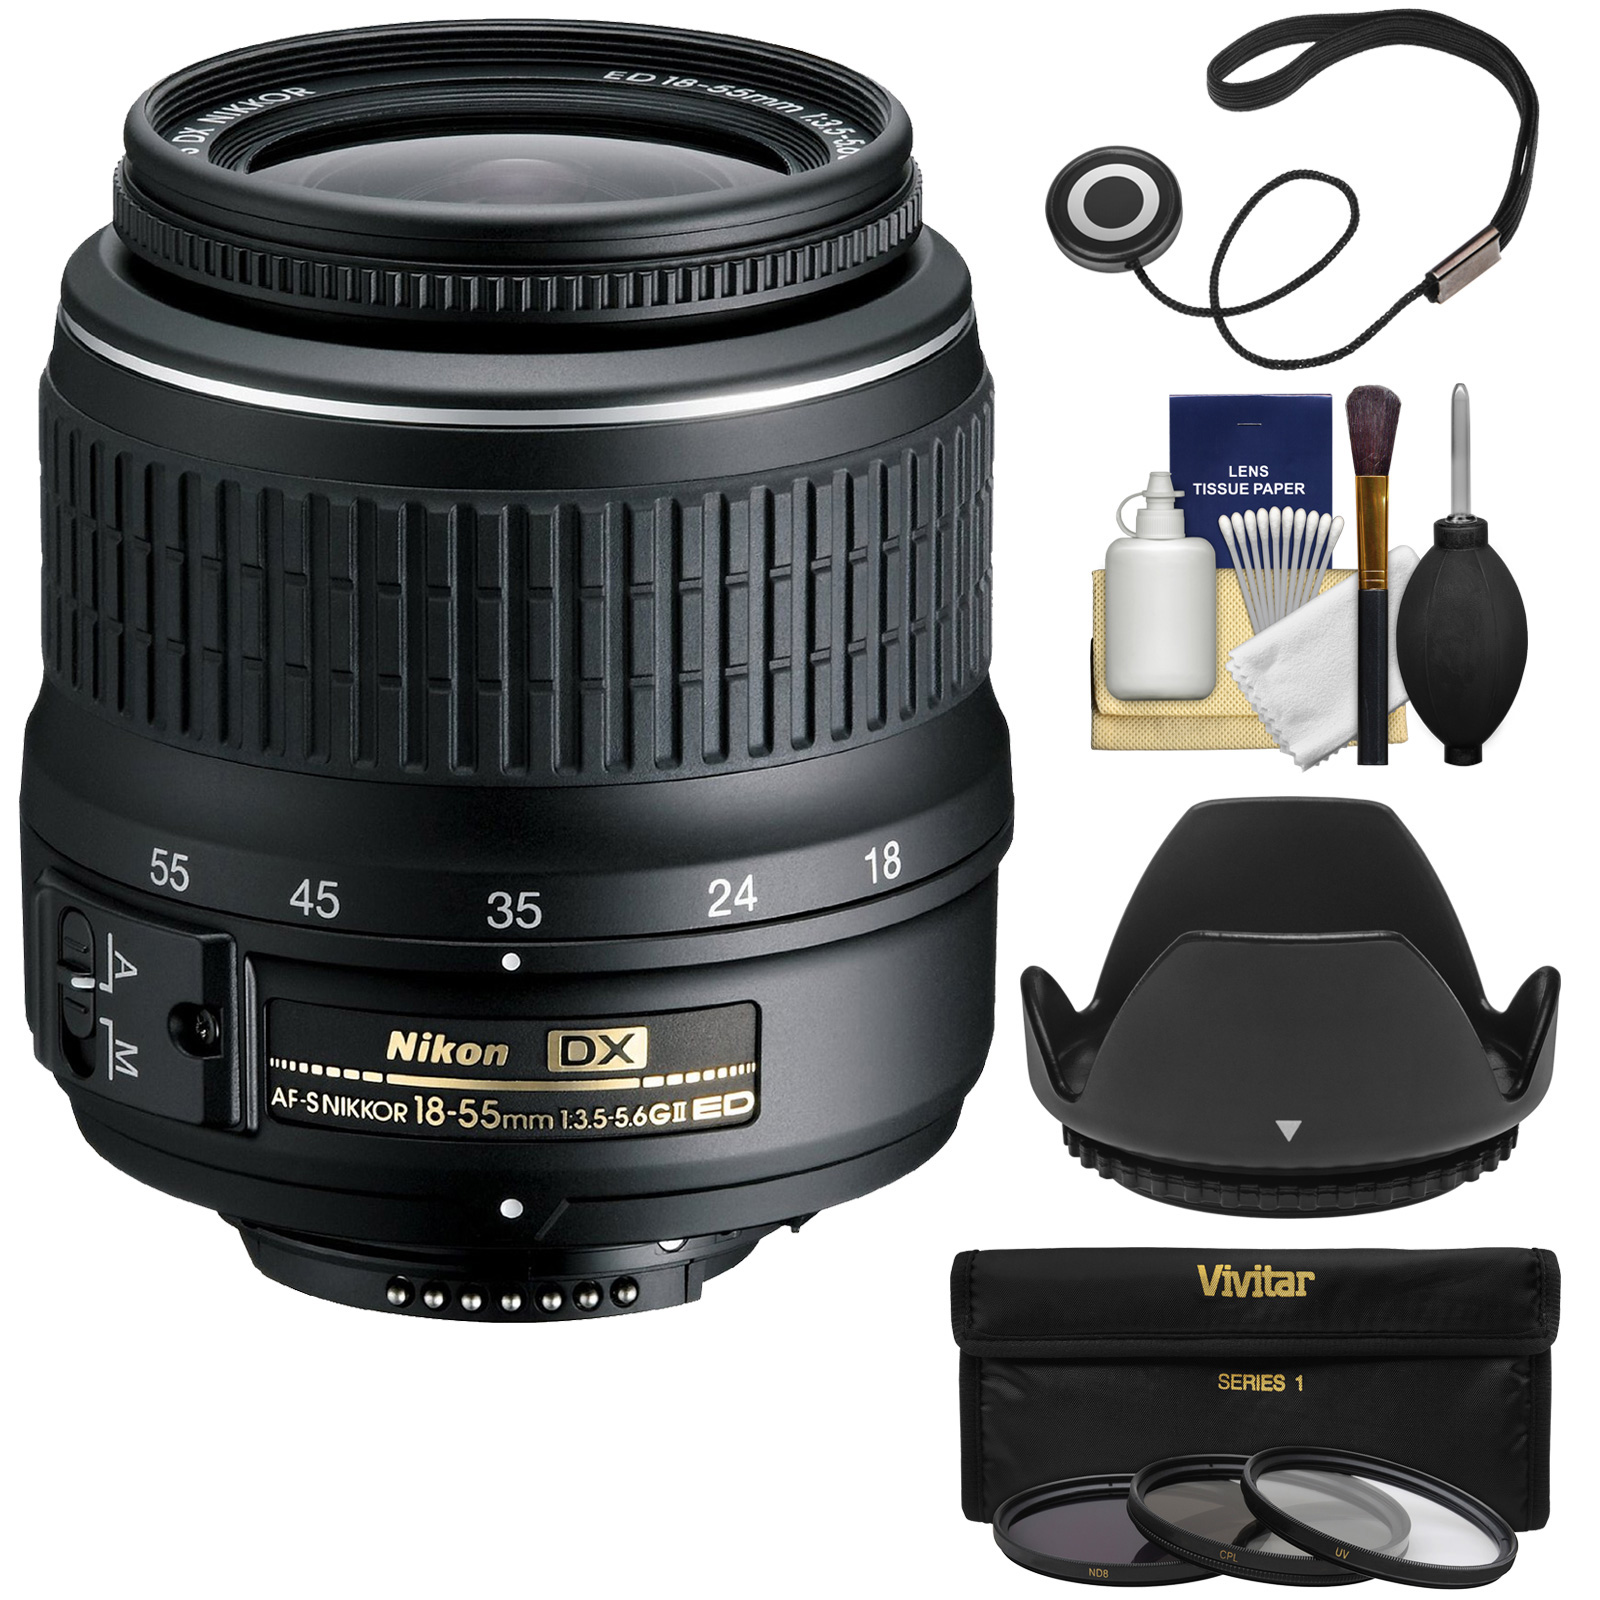 Nikon 18-55mm f/3.5-5.6G II DX AF-S ED Zoom-Nikkor Lens with 3 Filters + Hood Kit for D3200, D3300, D5300, D5500, D7100, D7200 Cameras